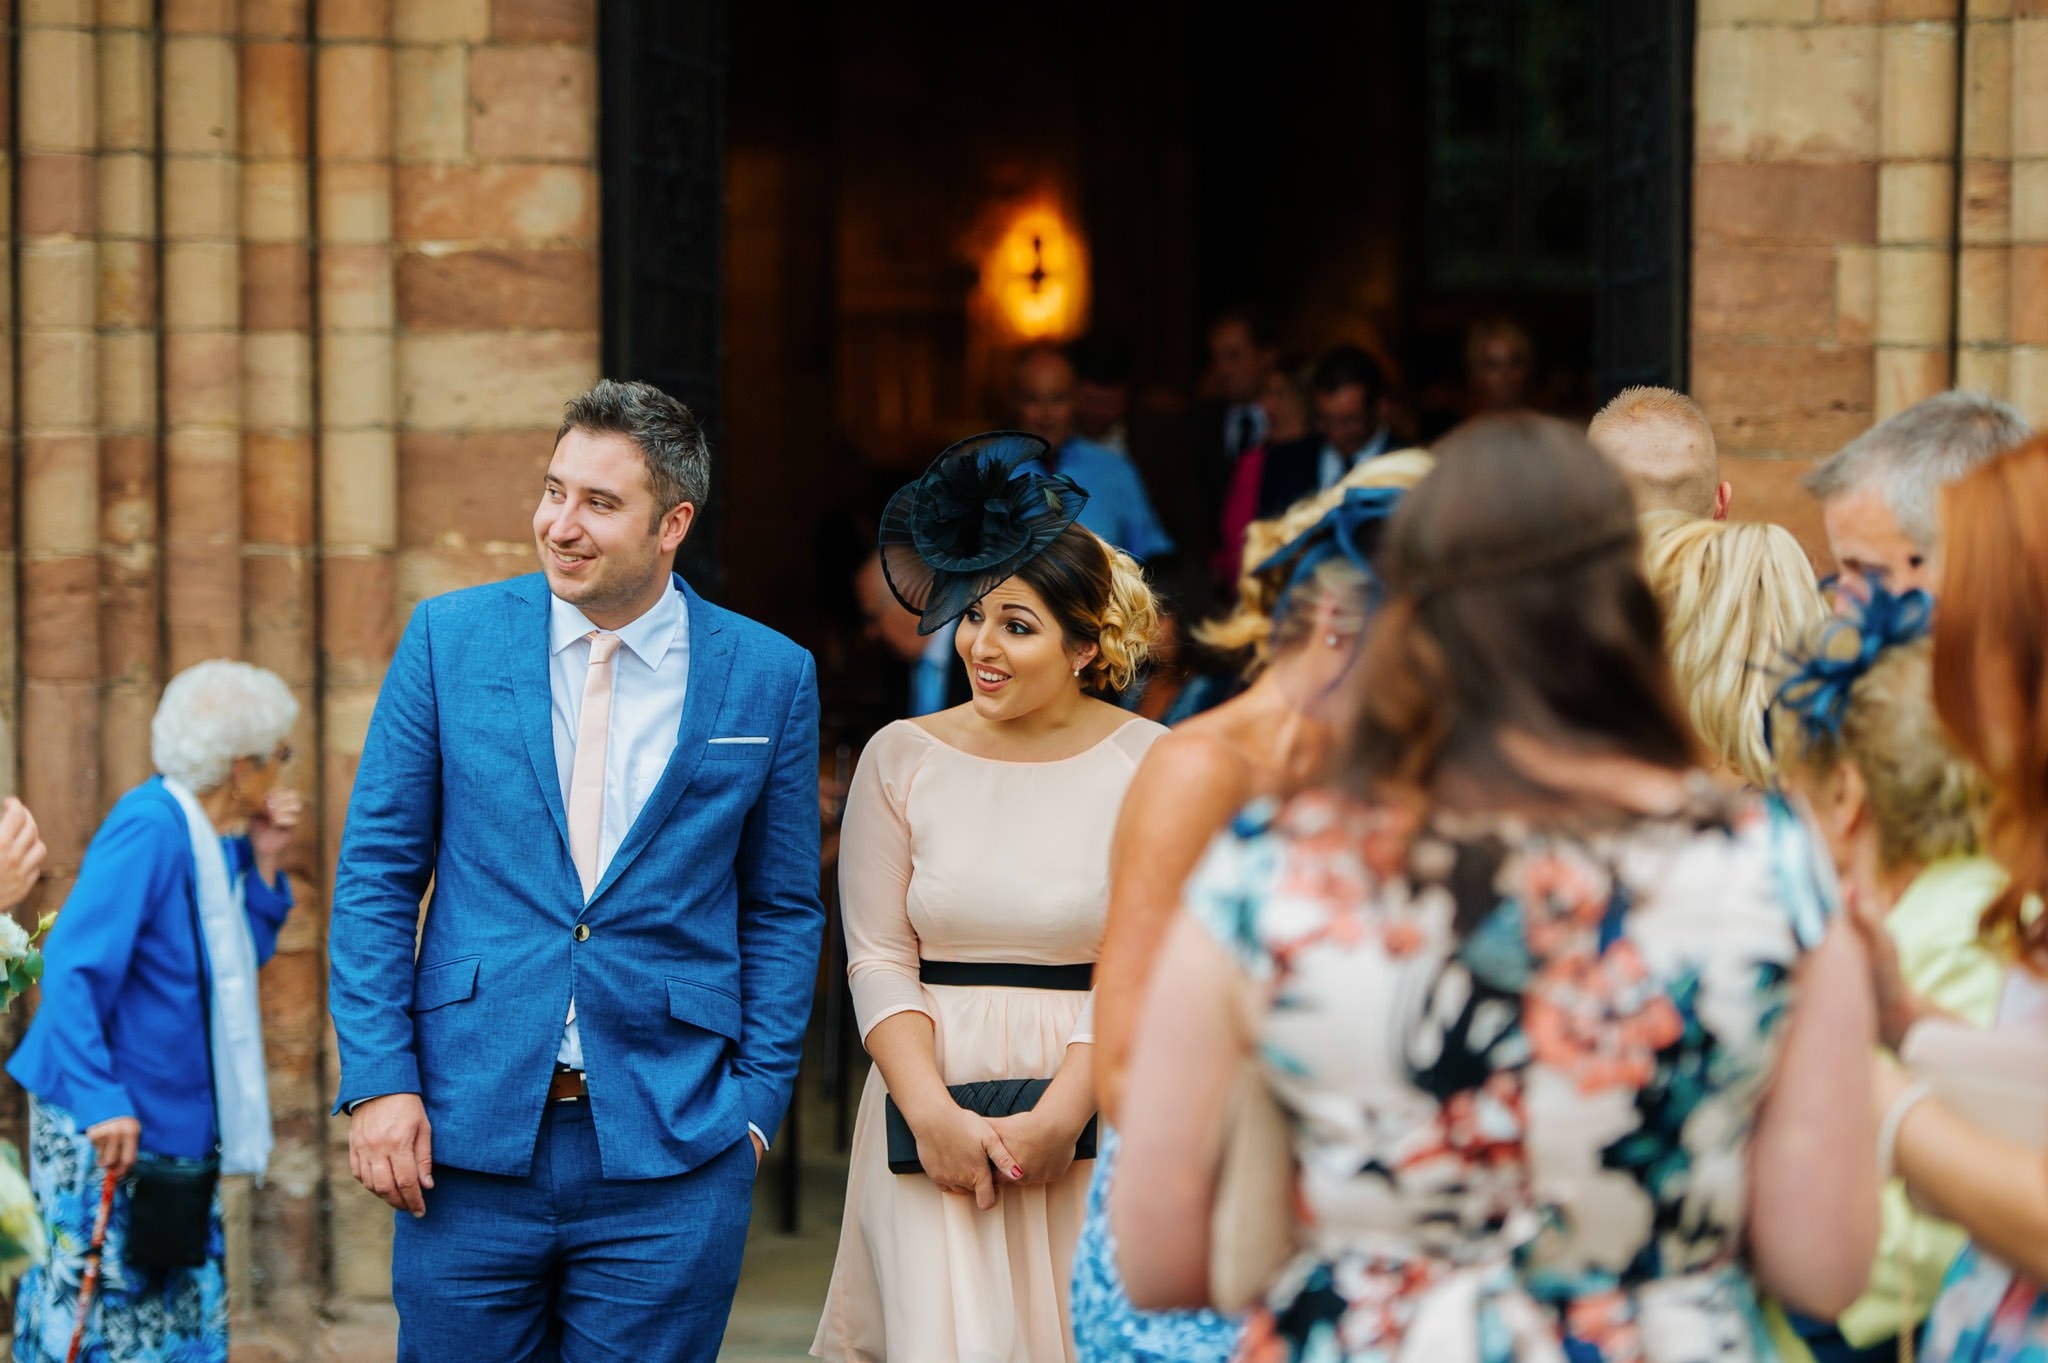 eastnor castle wedding pictures 38 - Eastnor Castle wedding photographer Herefordshire, West Midlands - Sarah + Dean